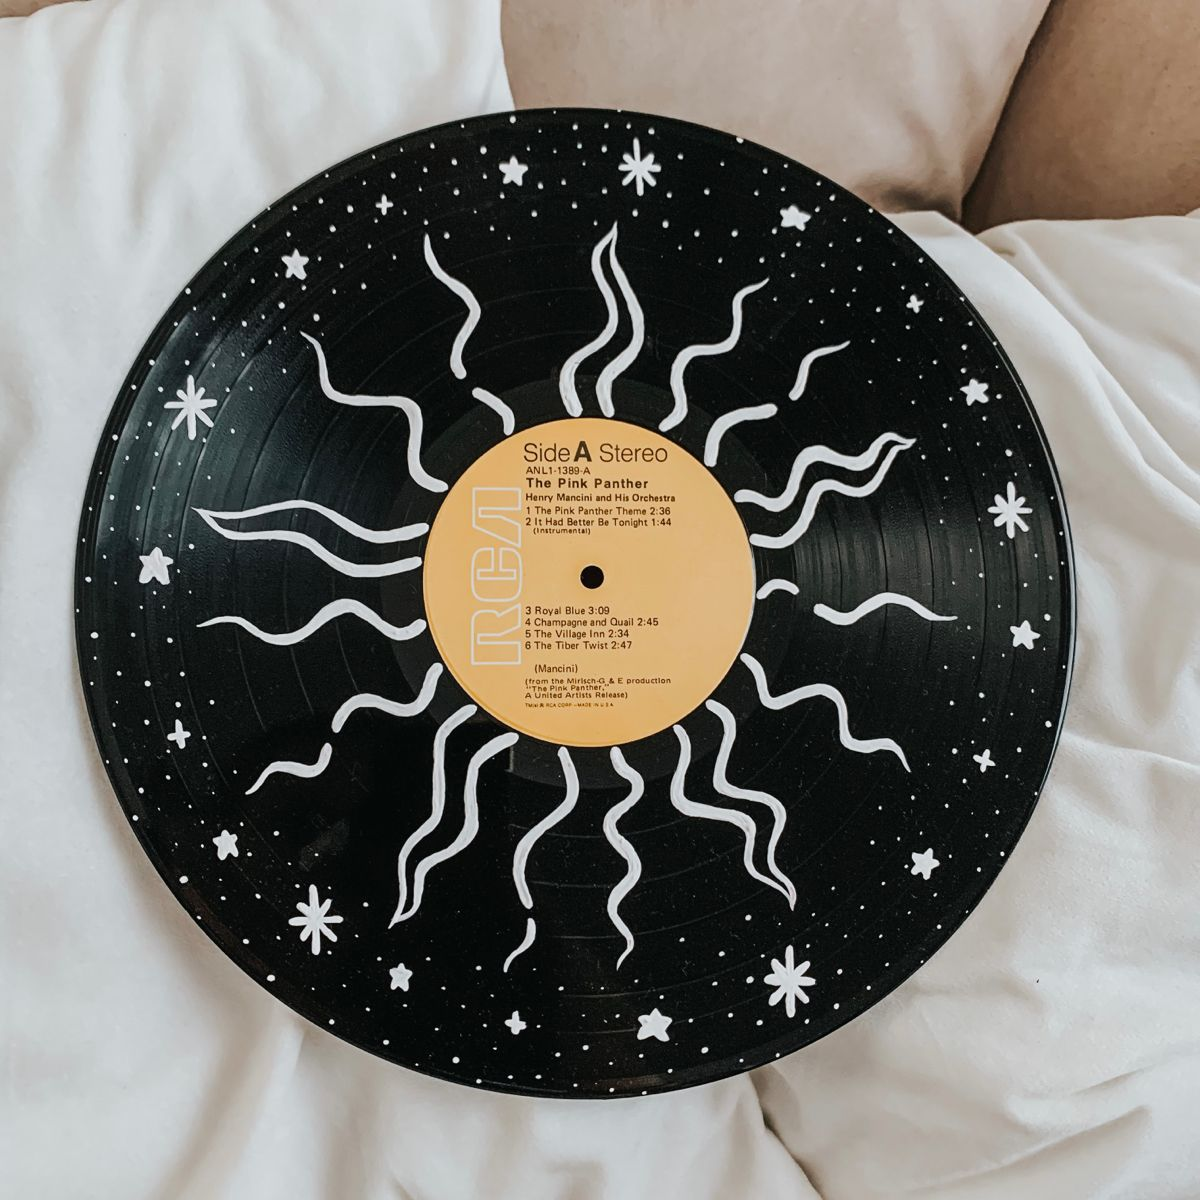 Sun And Stars Hand Painted 12 Inch Vinyl Record Wall Hanging Etsy In 2020 Sun And Stars Colored Labels Vinyl Records